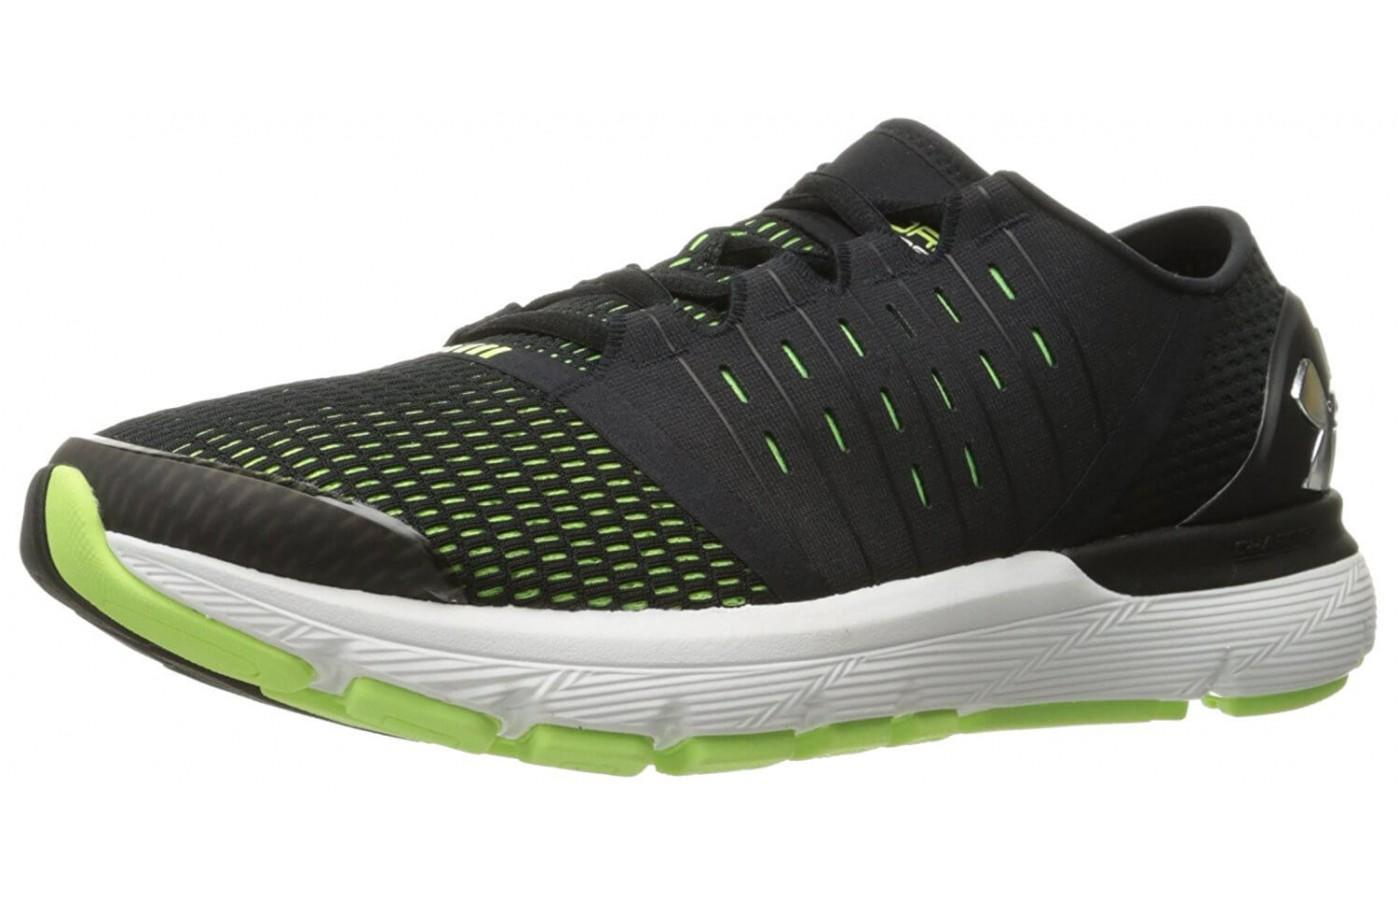 best cheap bb4f2 8a818 The Under Armour Speedform Europa has a highly cushioned midsole.